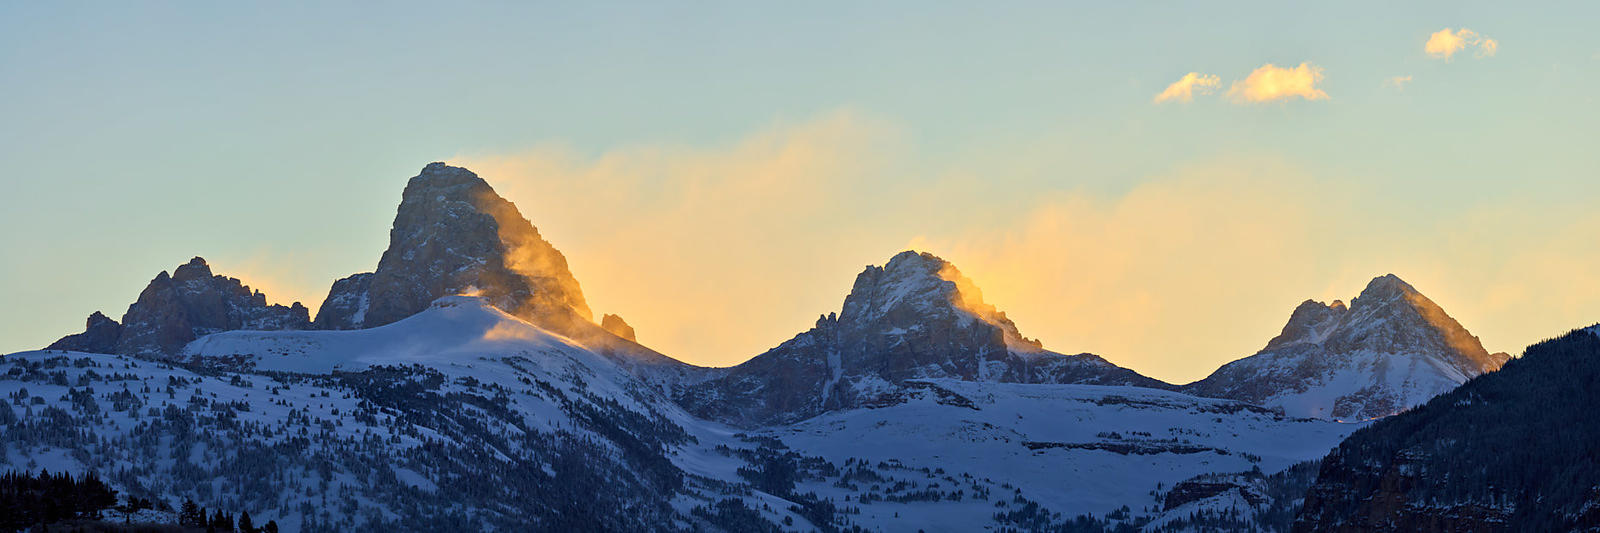 Teton Valley Sunrise